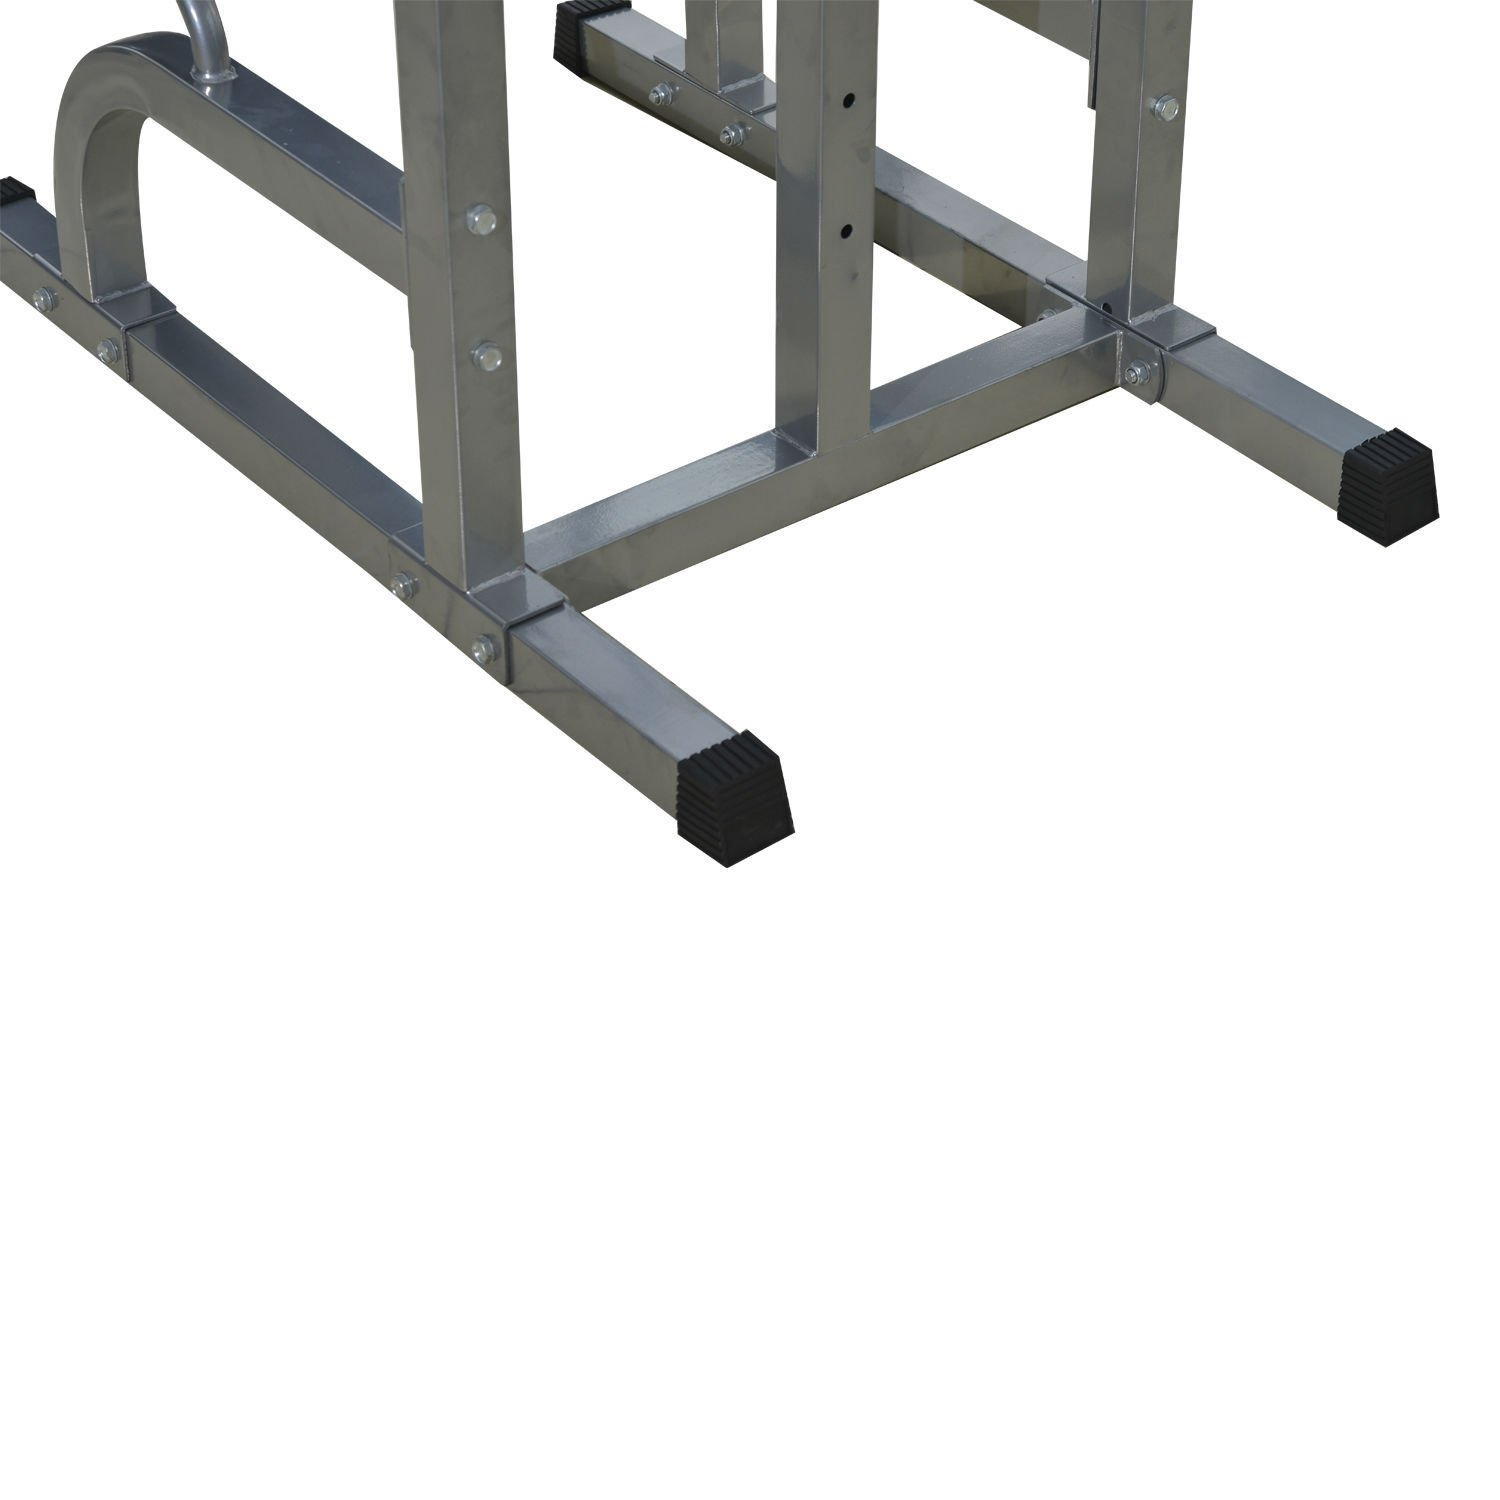 Home Gym Workout Strength Fitness Training Power Tower Dip Station Weight Bench by Happybeamy (Image #3)